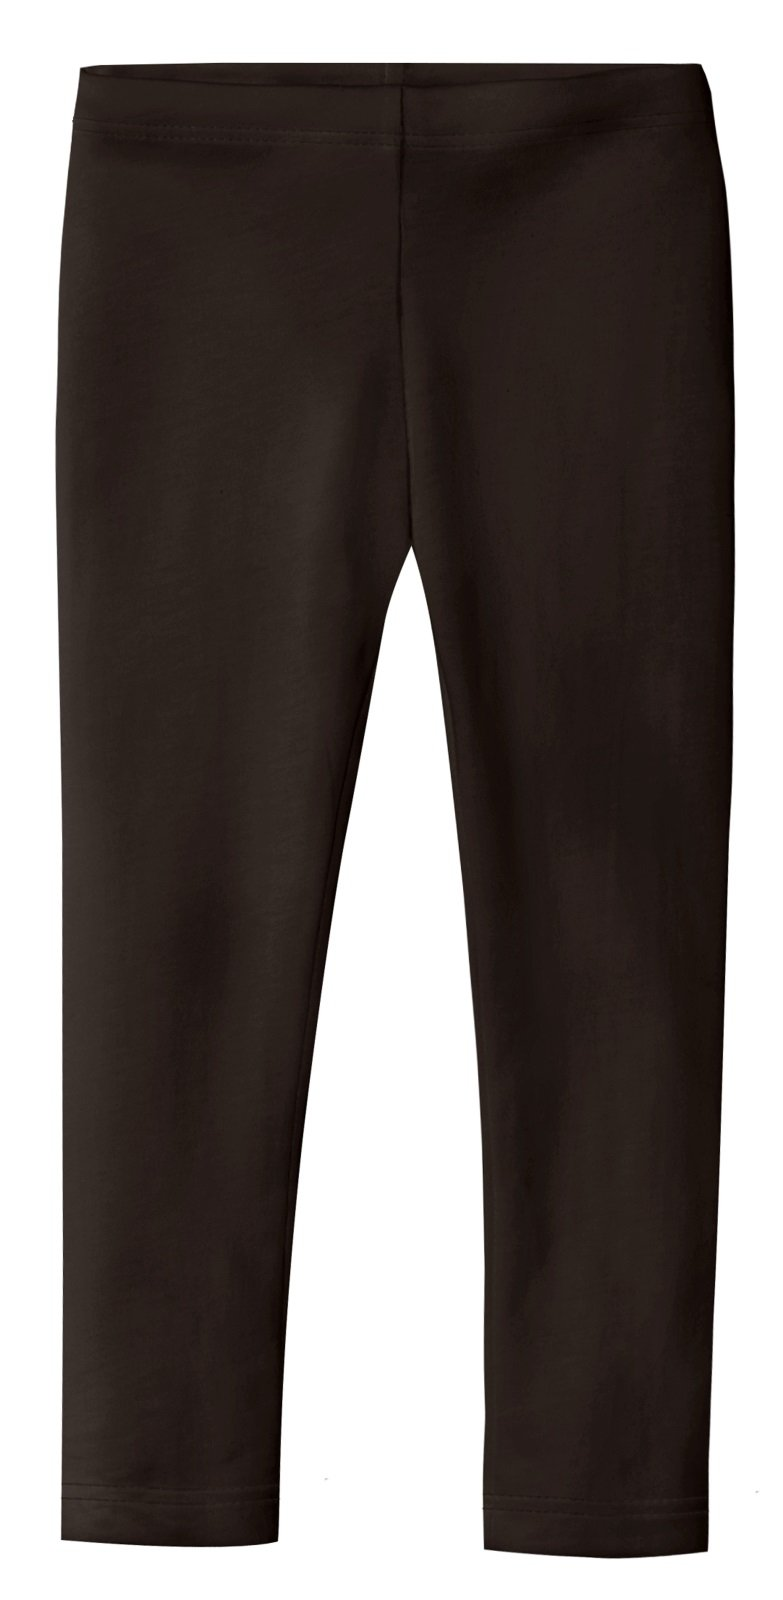 City Threads Girls' Leggings 100% Cotton for School Uniform Sports Coverage Play Perfect for Sensitive Skin SPD Sensory Friendly Clothing, Chocolate, 10